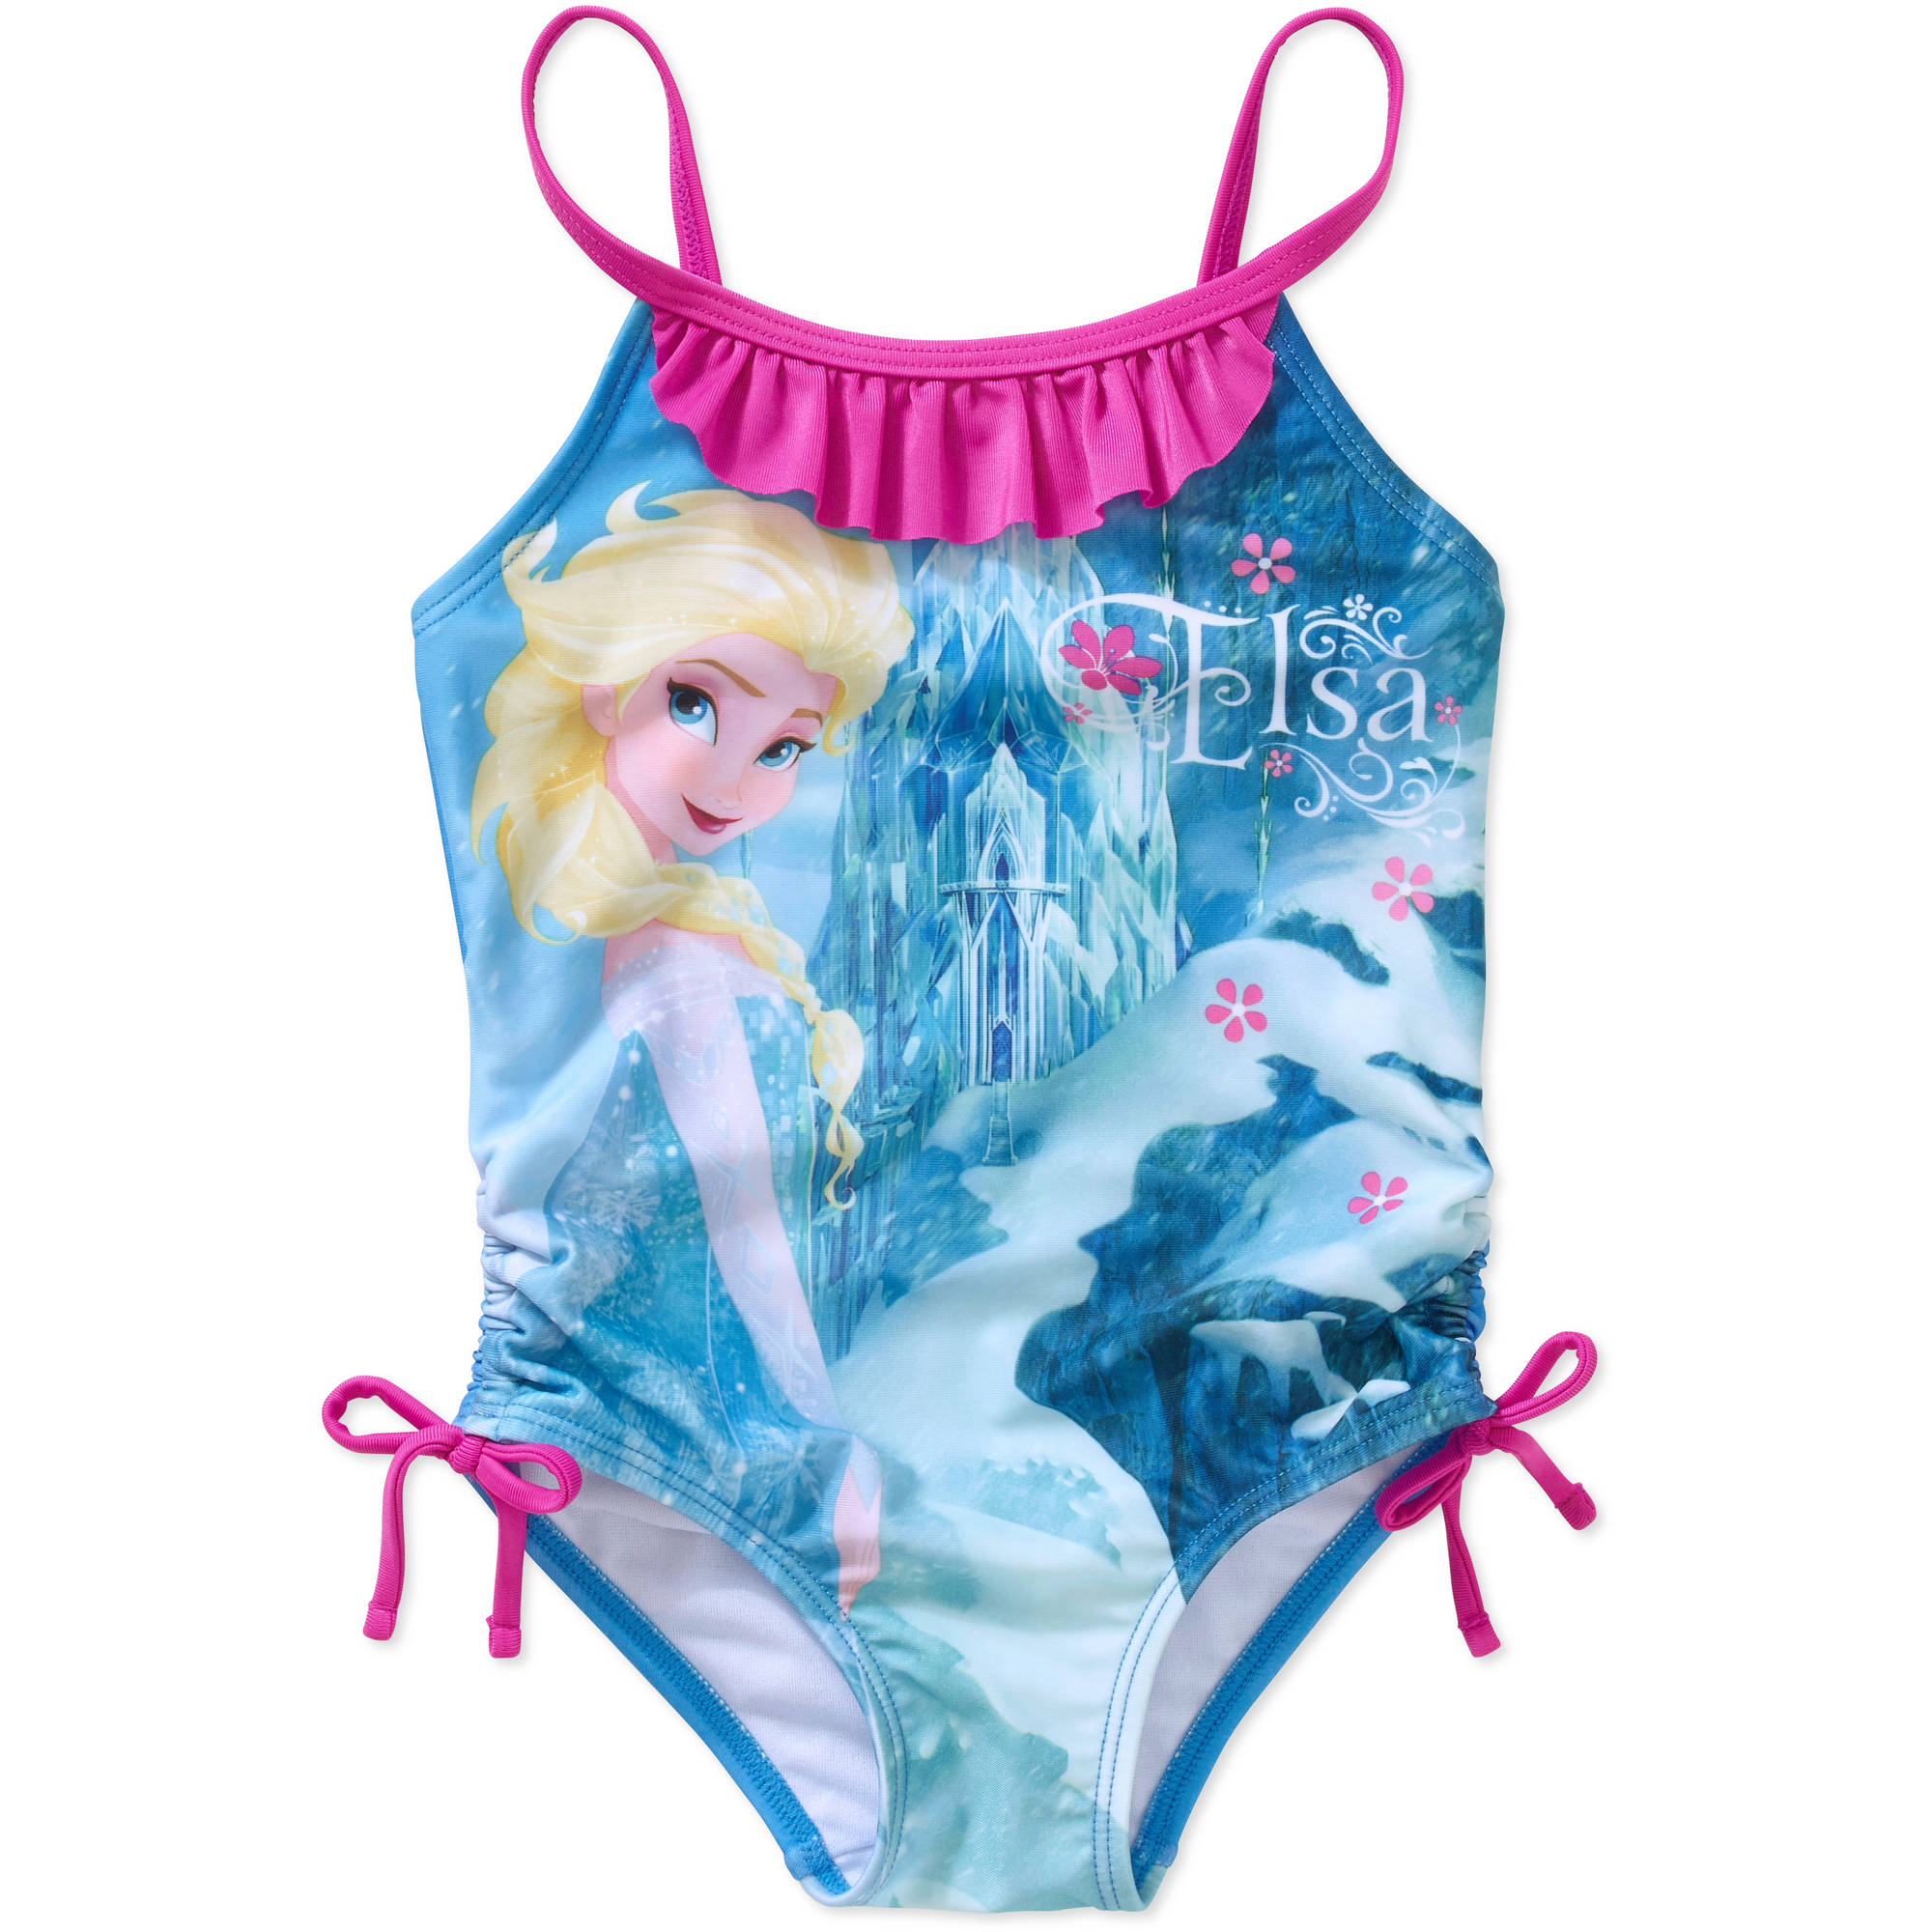 Disney Frozen Elsa Toddler Girl 1-Piece Swimsuit